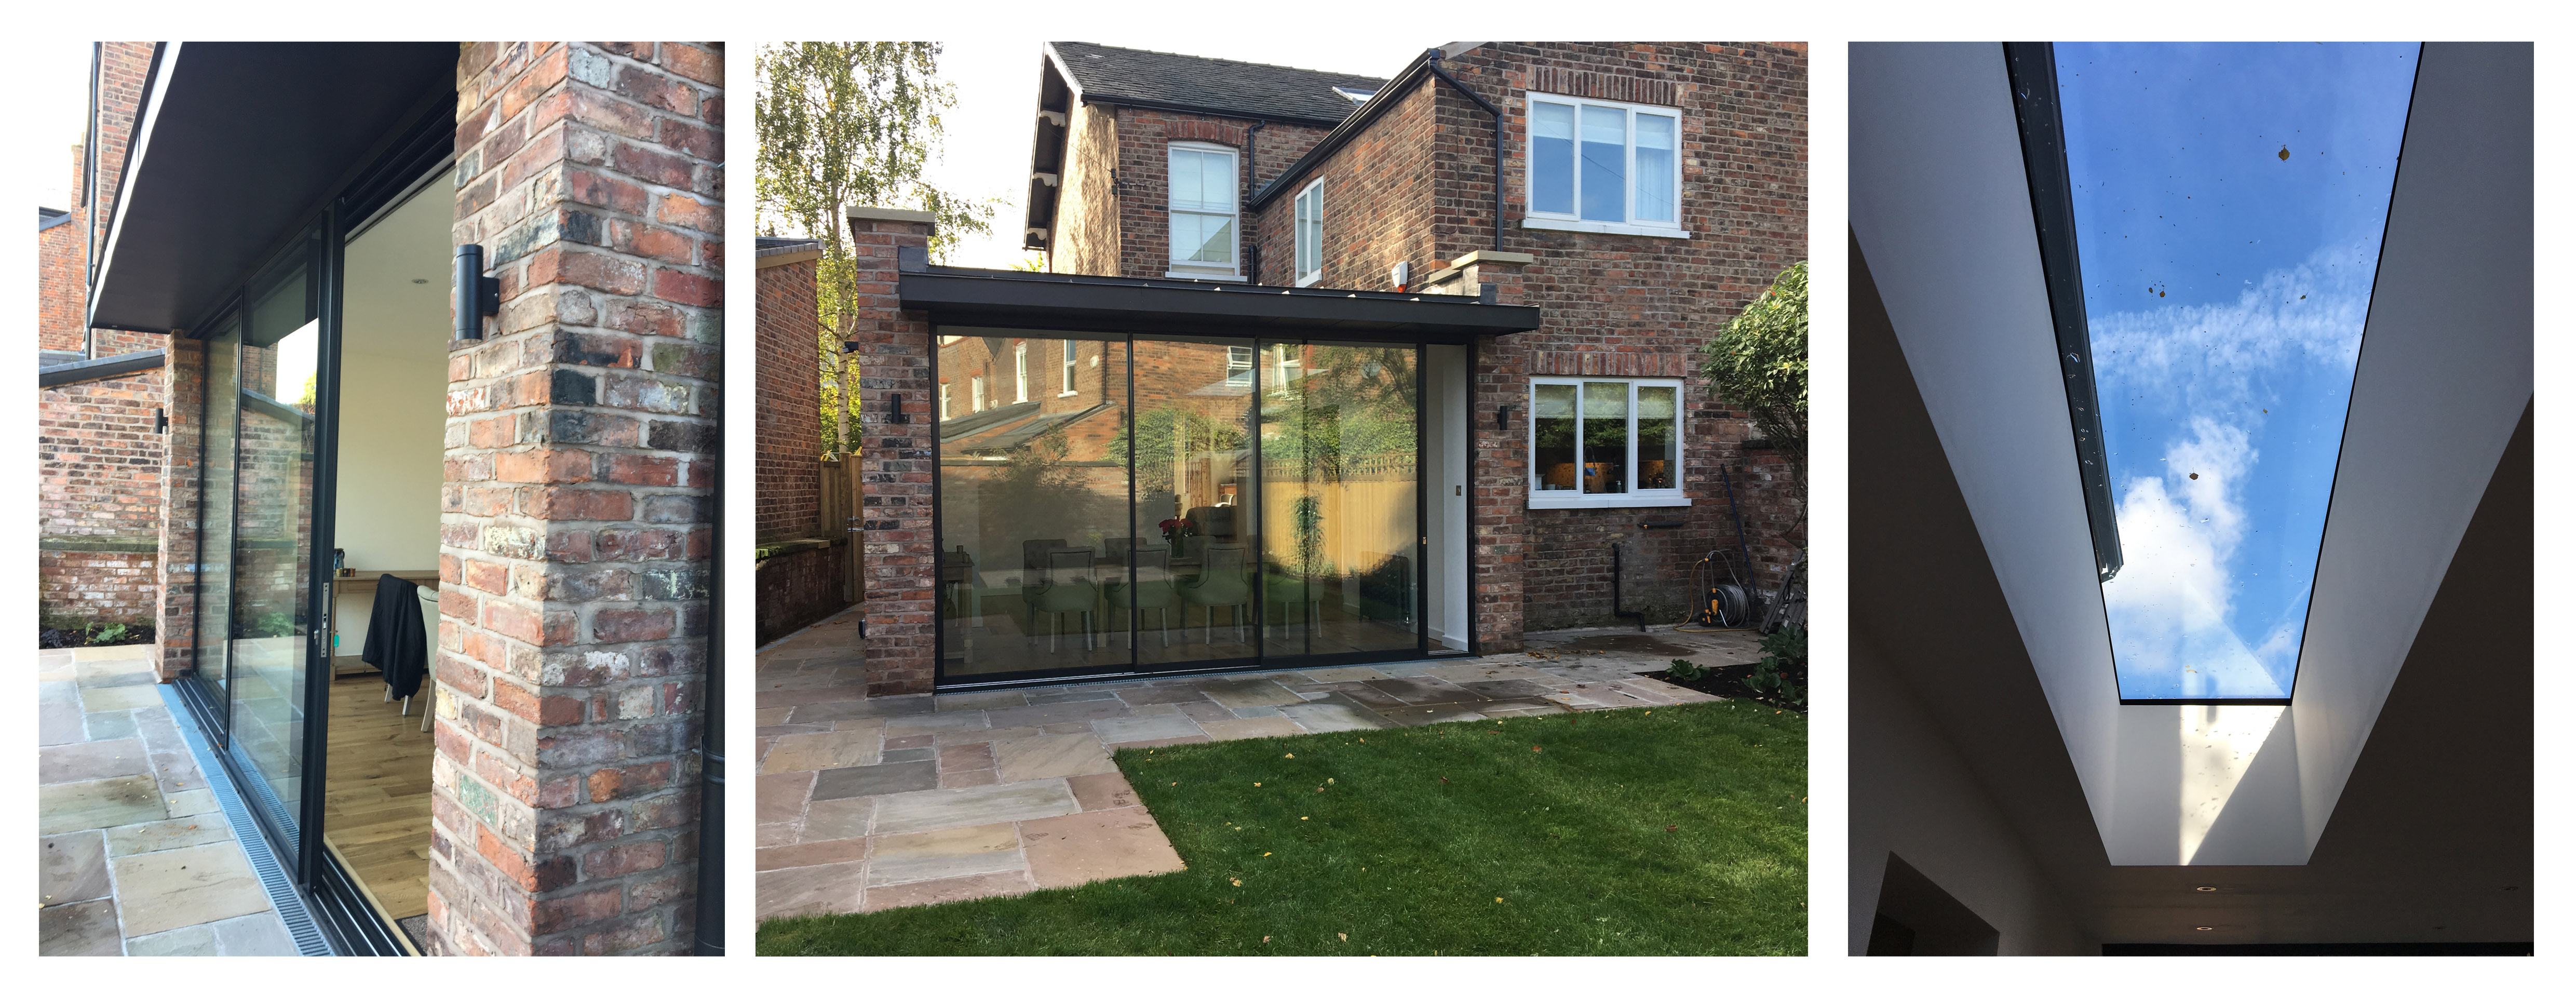 Garden room extension cb3 design architects for The garden room company